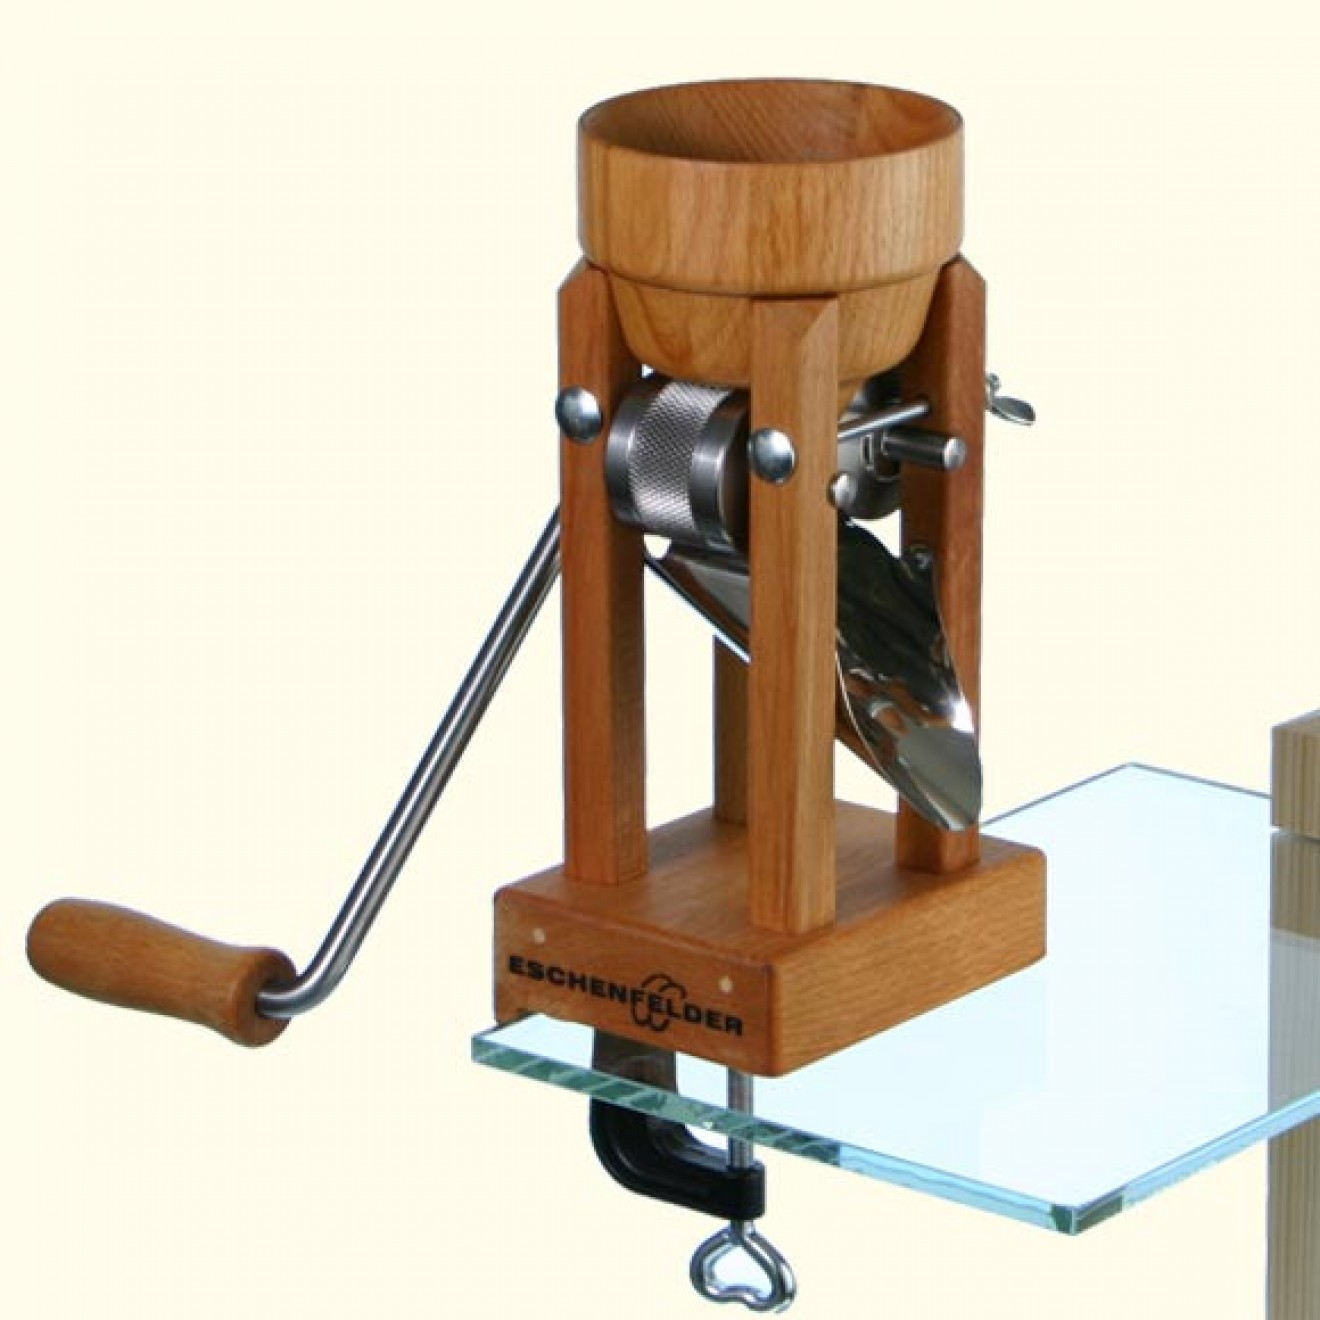 Eschenfelder Grain Flaker with Wood Funnel